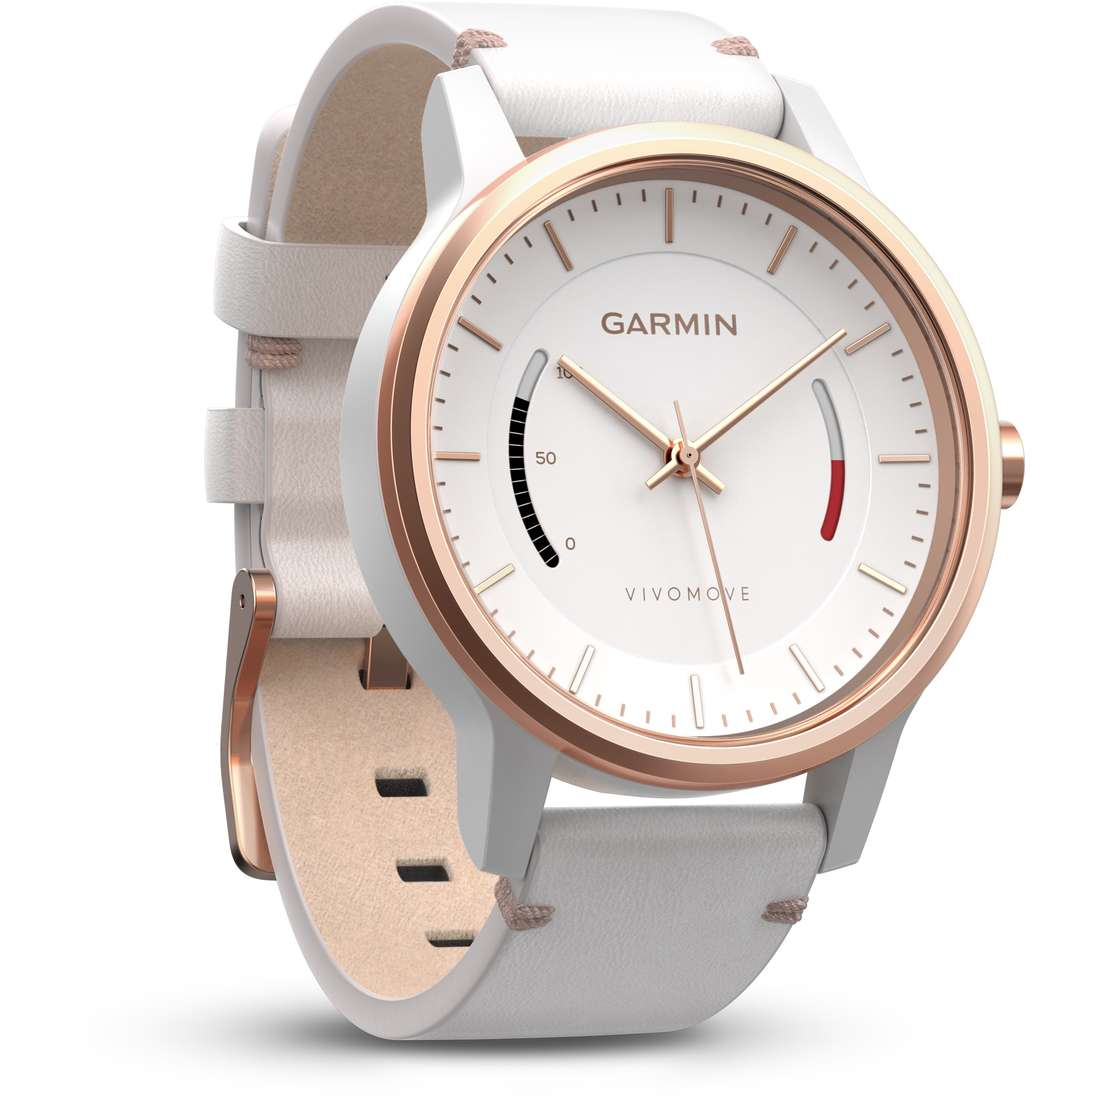 orologio digitale unisex Garmin Vivomove 010-01597-11